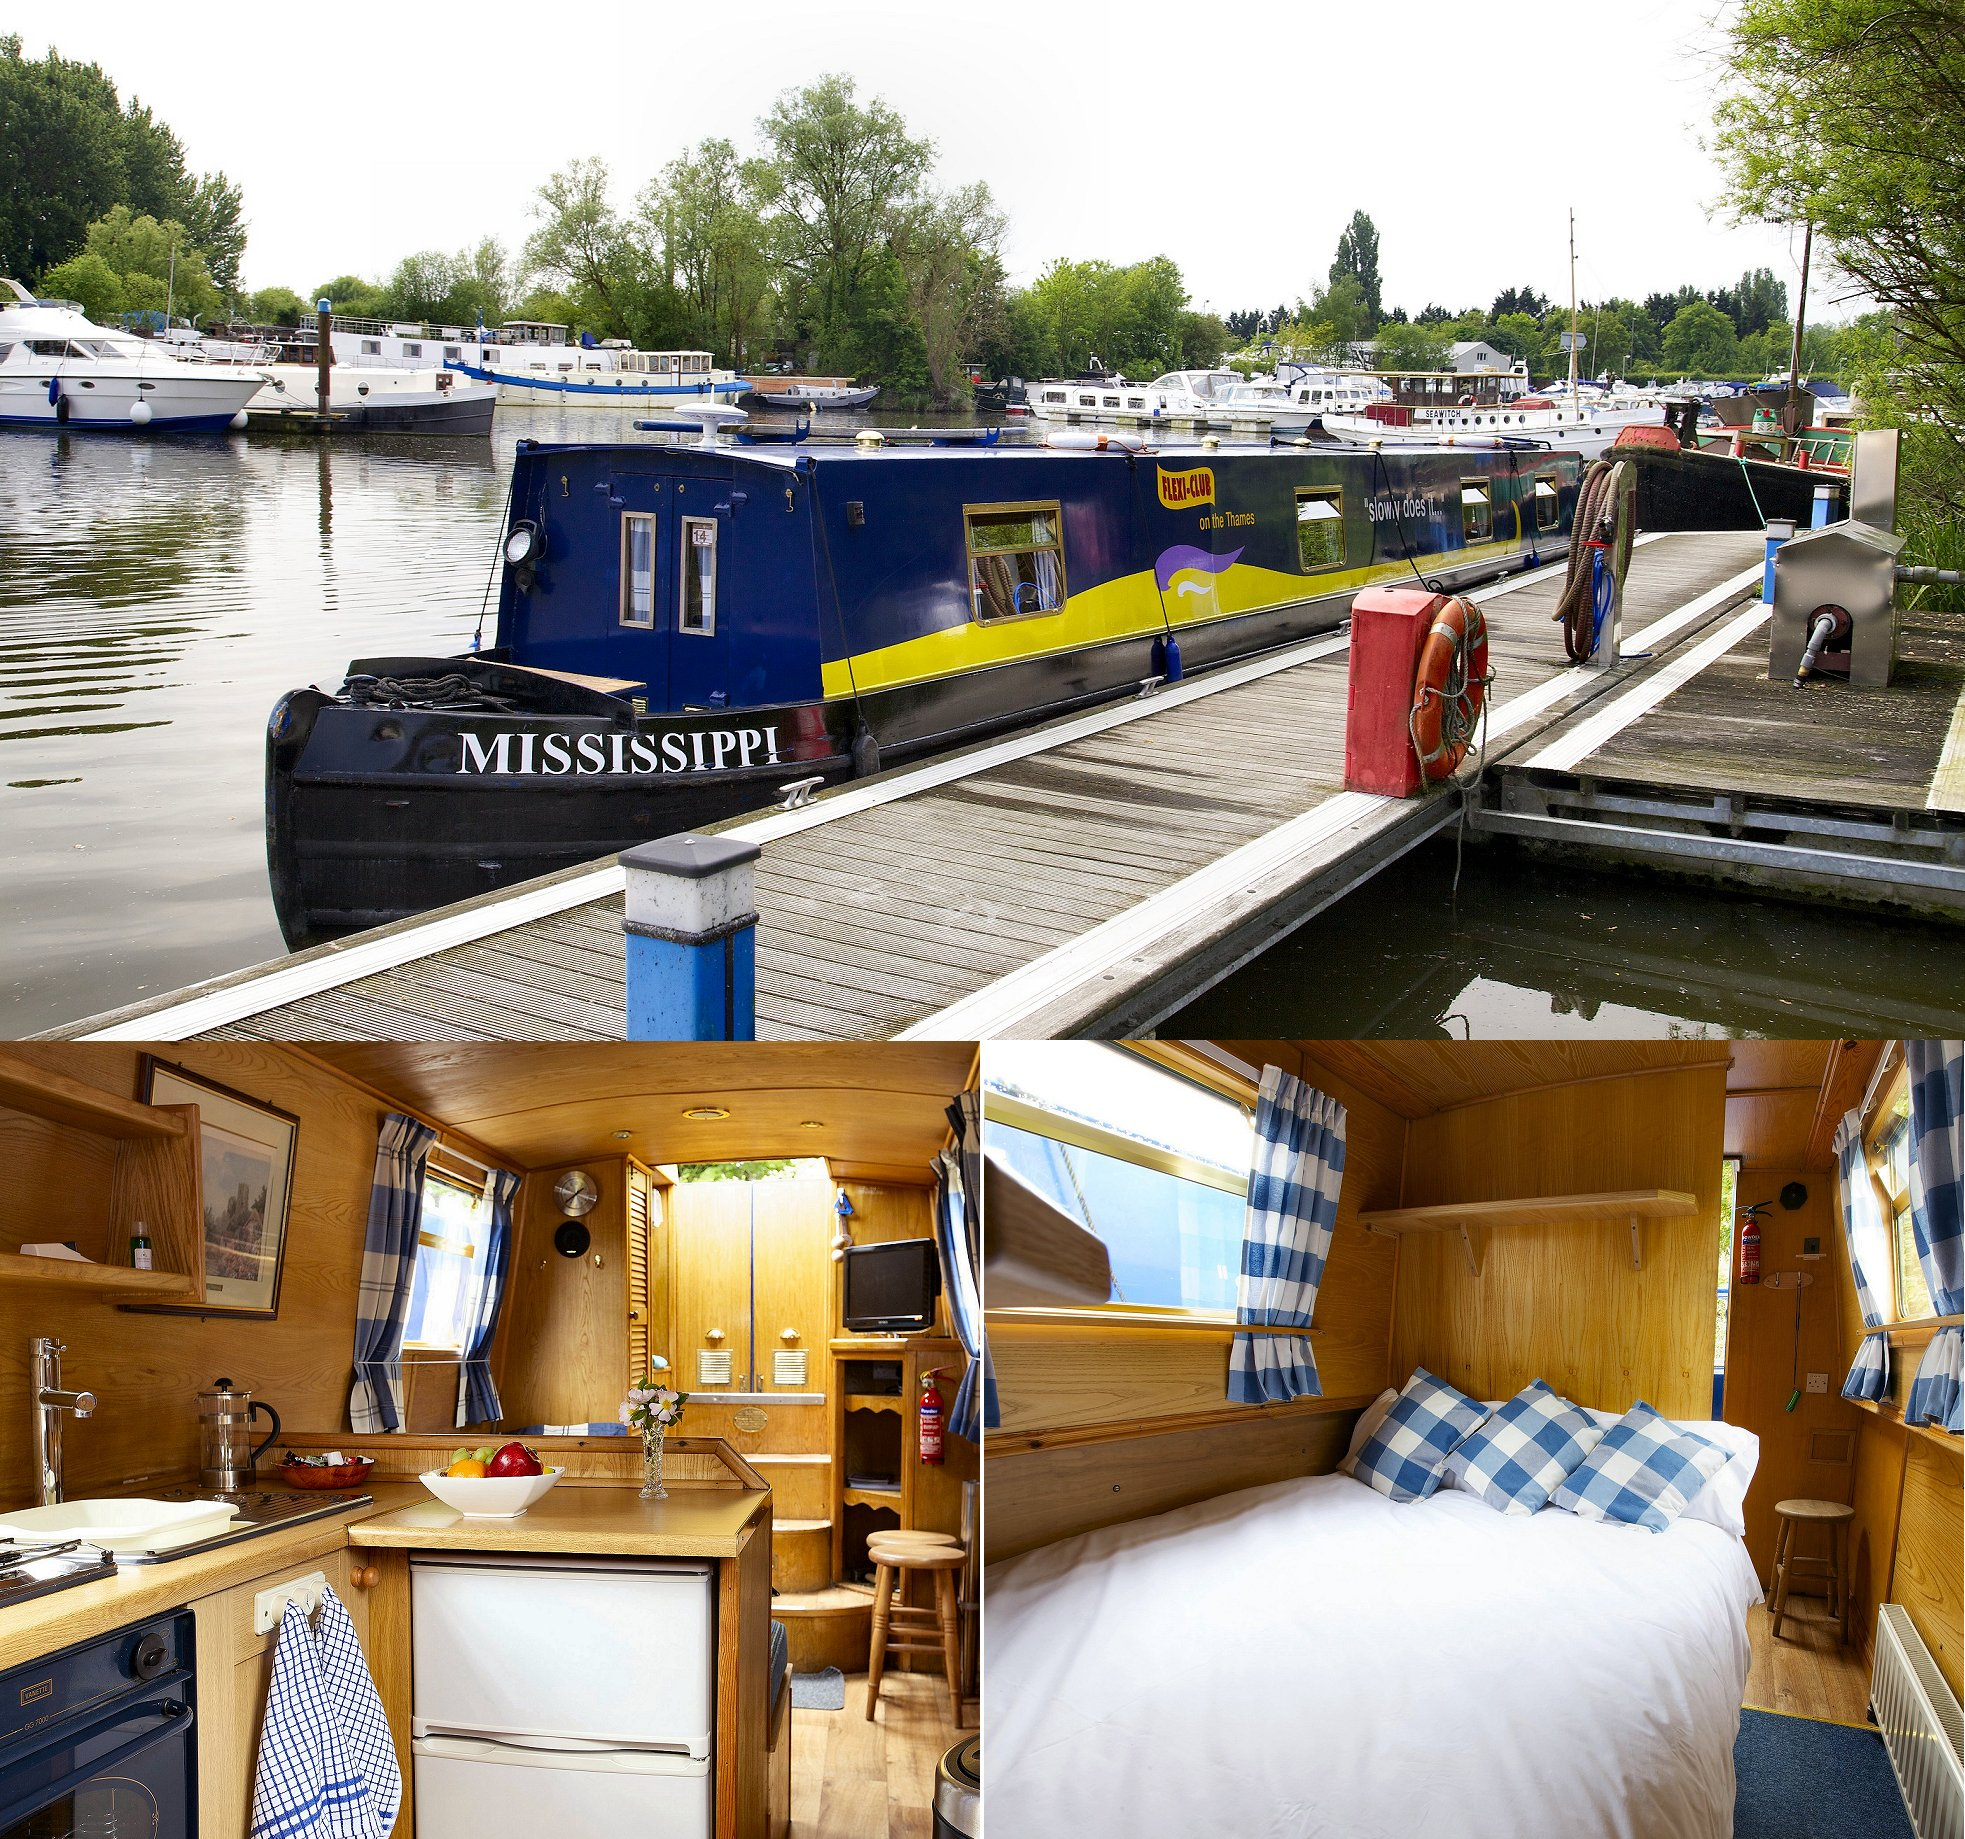 Hire Boat 'Mississippi'